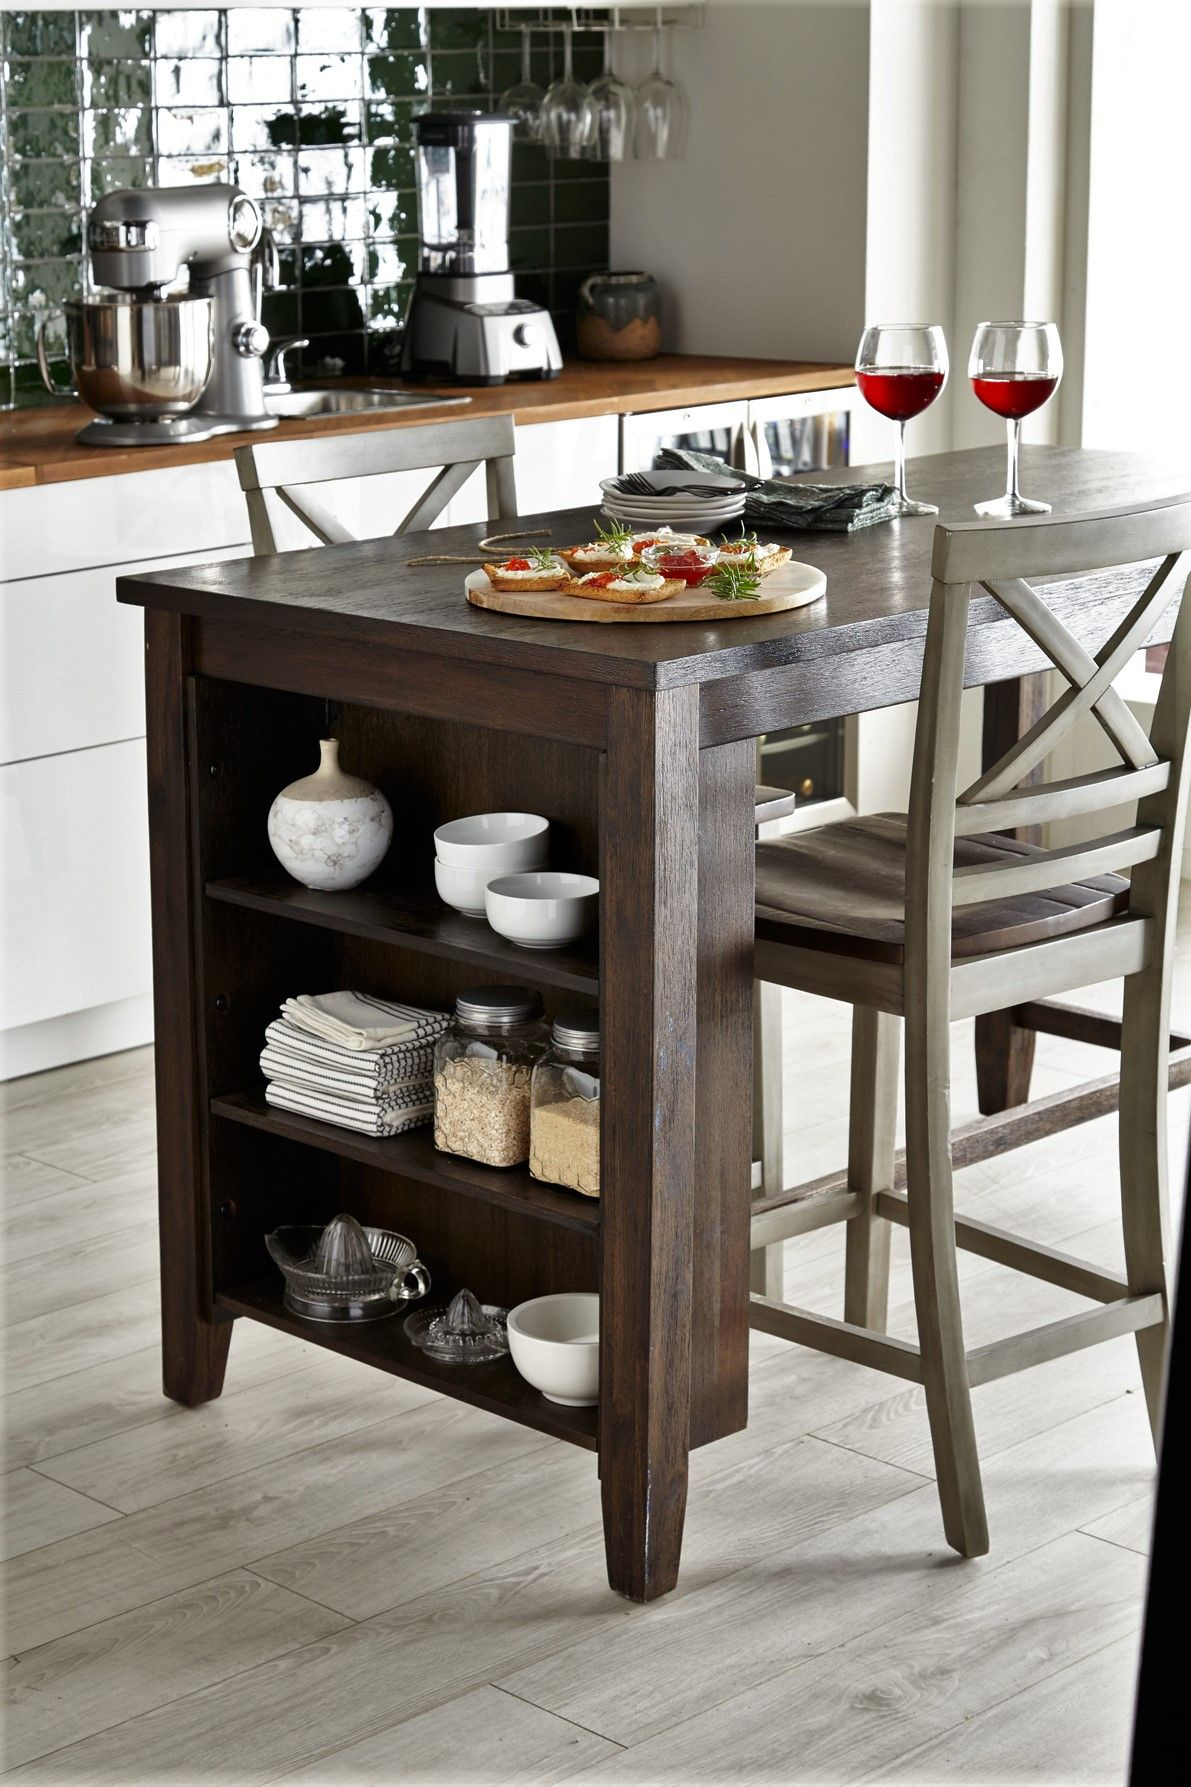 Small Space Organization Dining Room Decor Dining Accessories